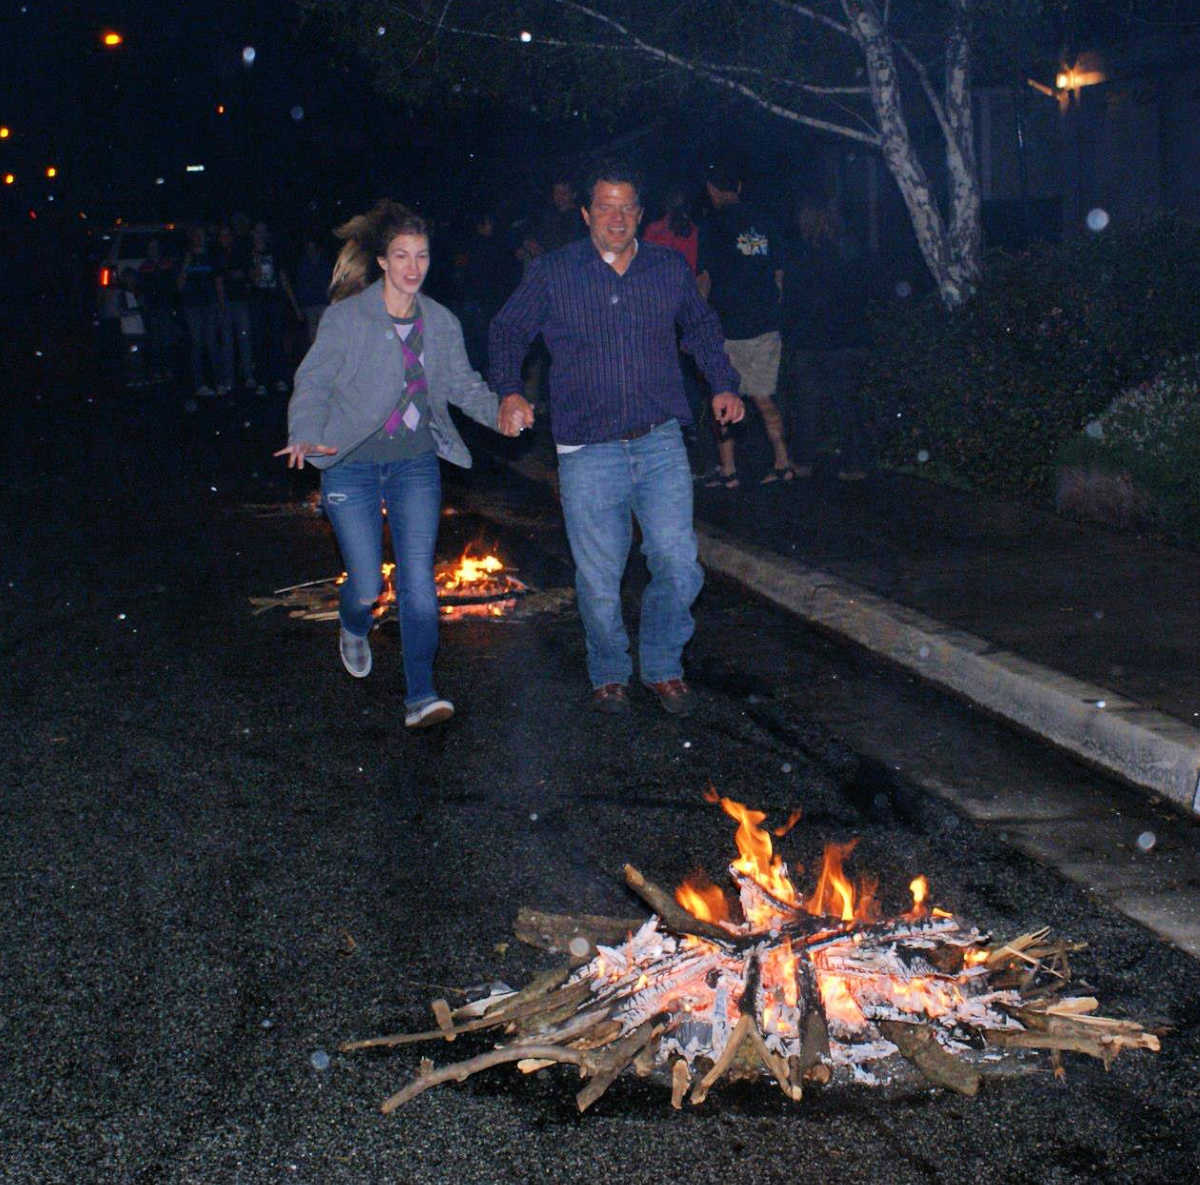 People jumping over small fires for Chahar Shanbeh Soori.